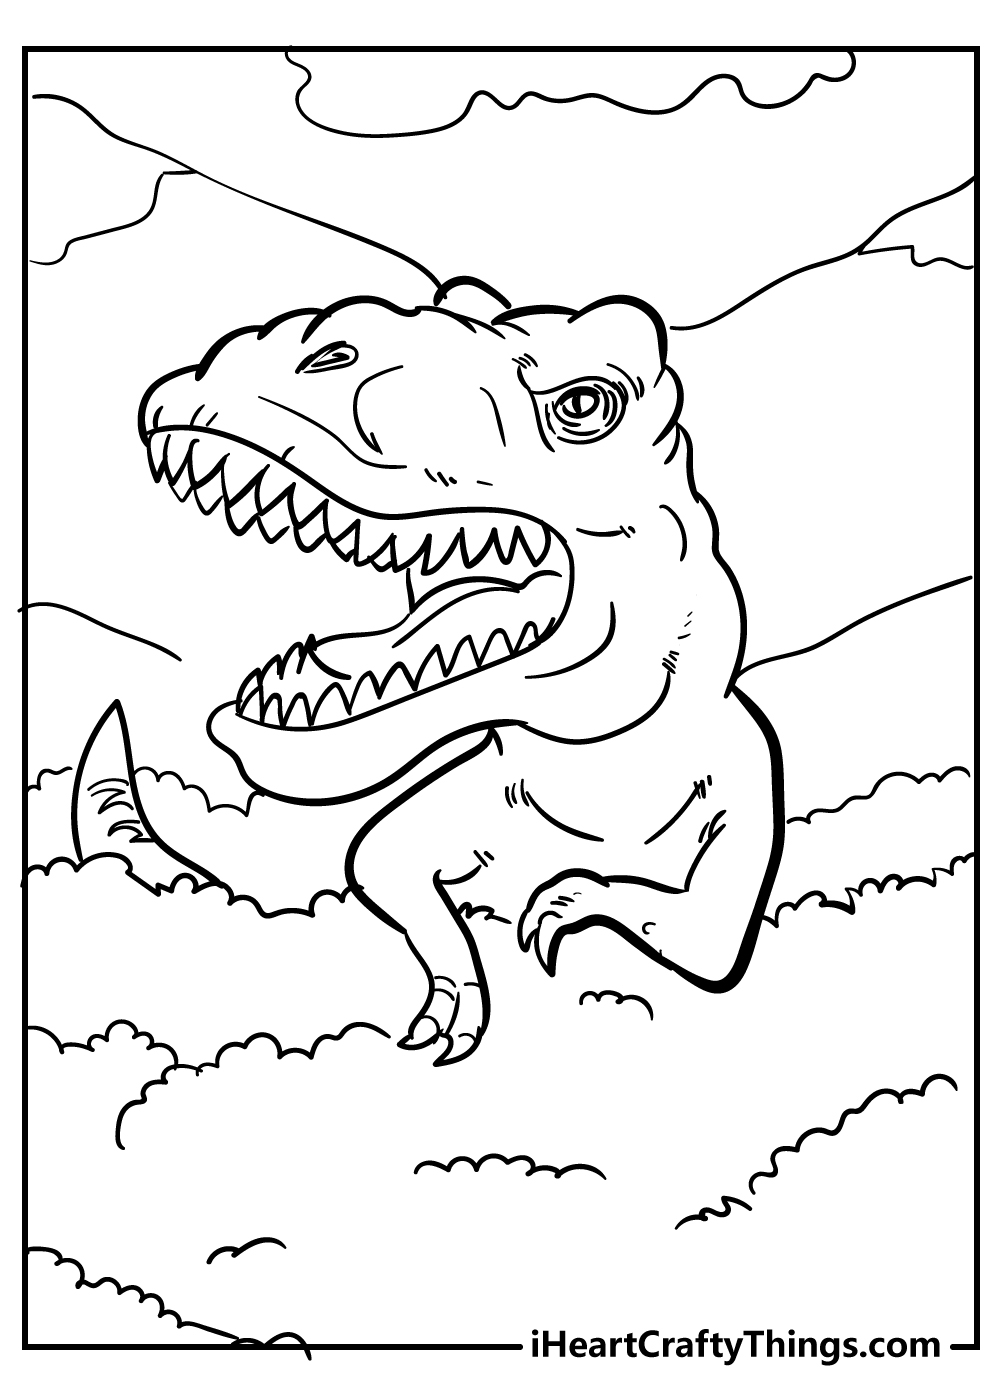 t-rex drawing coloring book free download